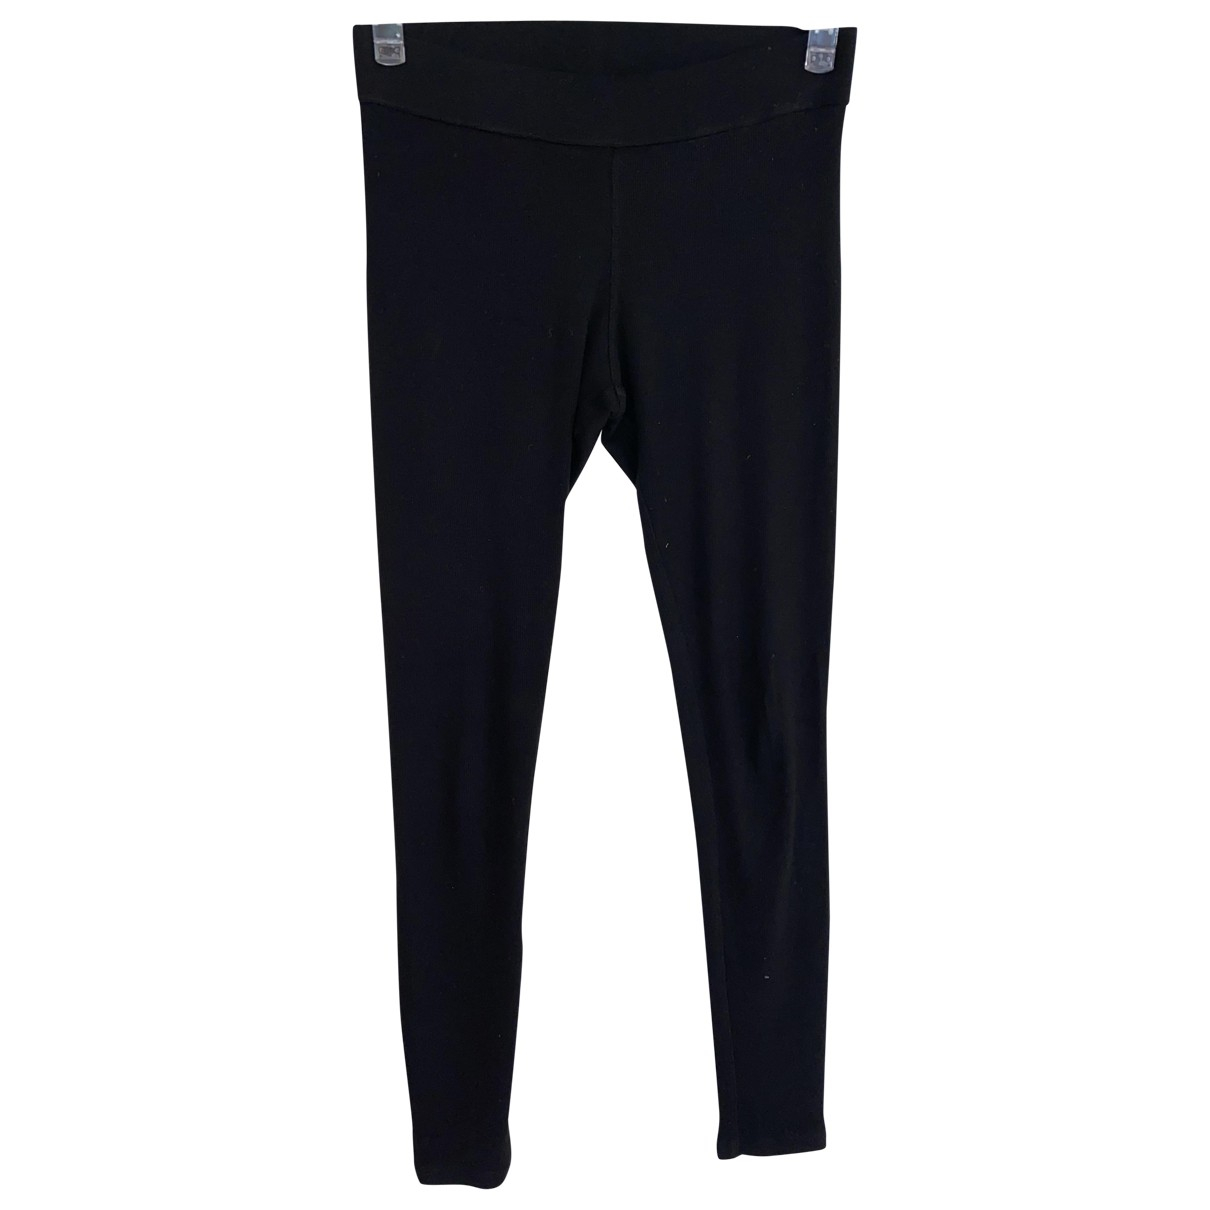 James Perse \N Black Cotton Trousers for Women 1 0-5